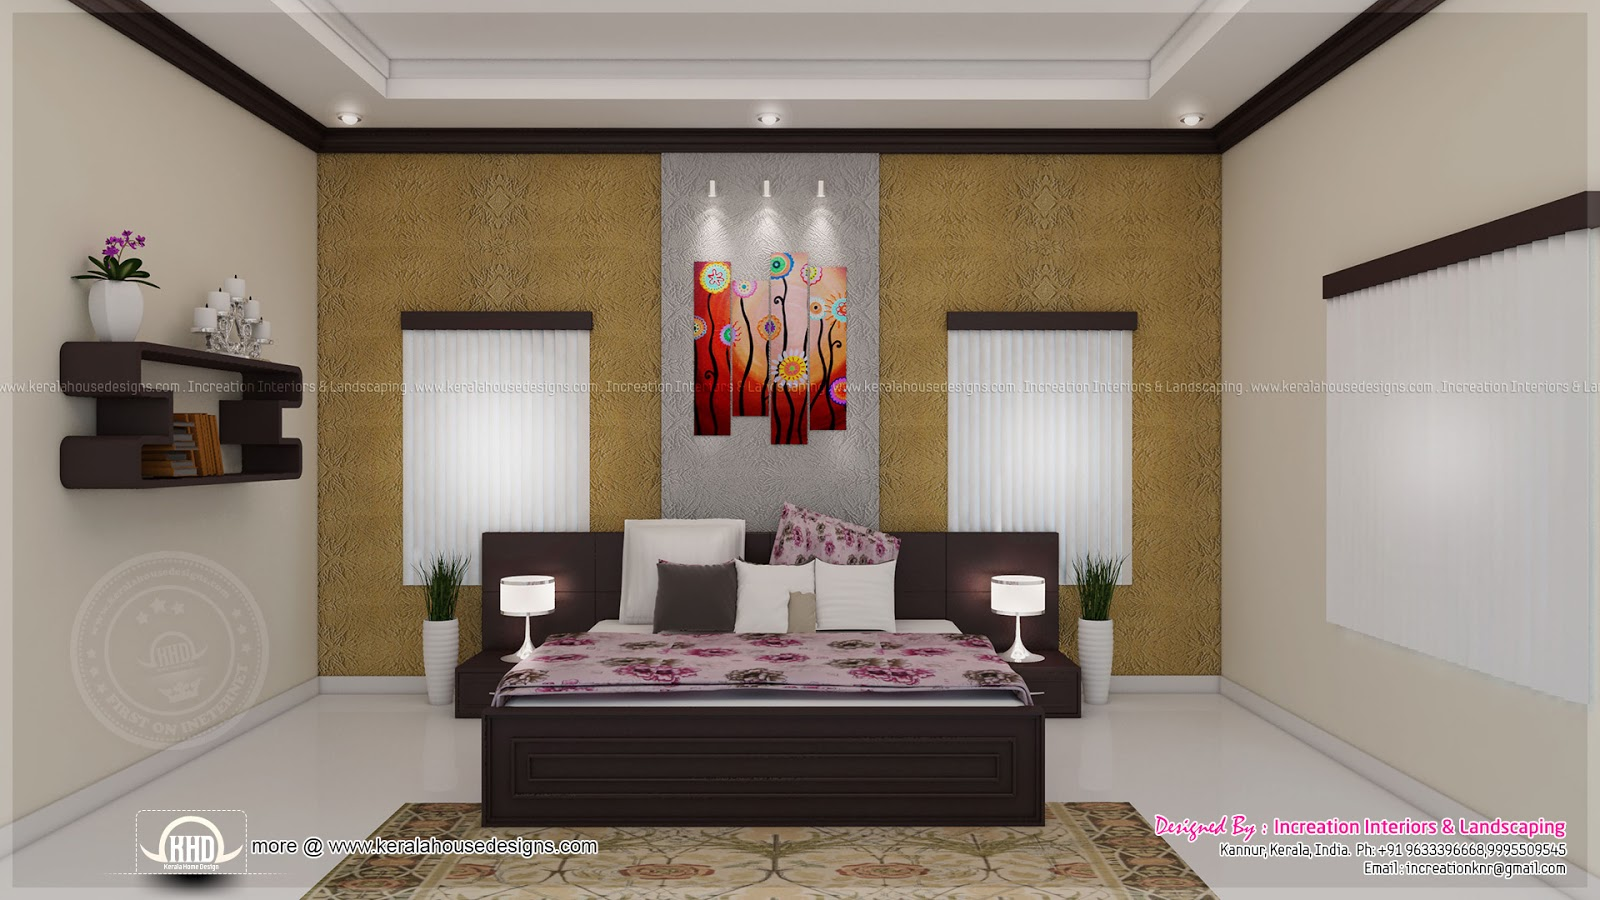 House interior ideas in 3d rendering kerala home design for Home design ideas